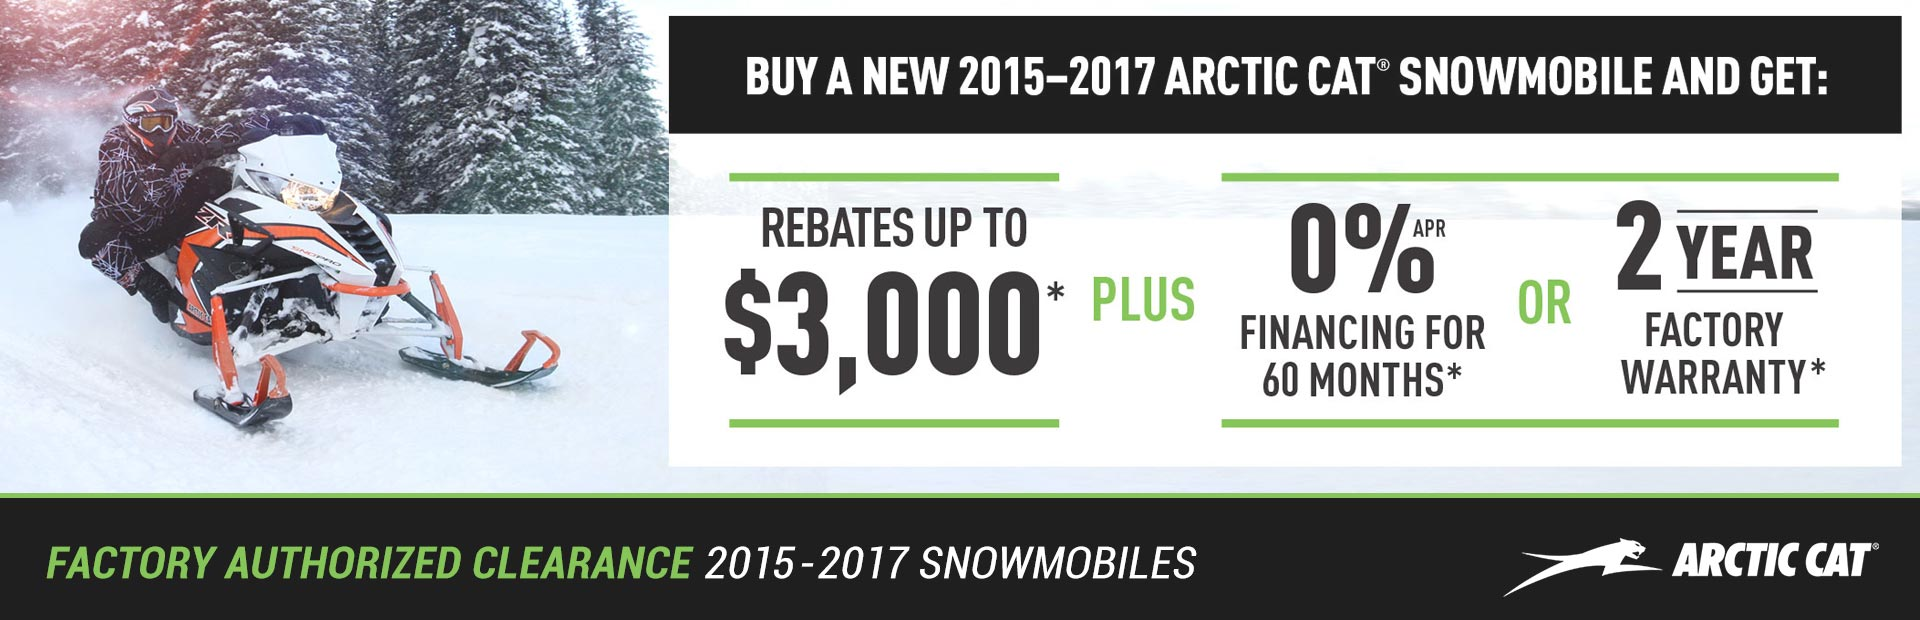 Arctic Cat: Factory Authorized Clearance 2015-2017 Snowmobiles